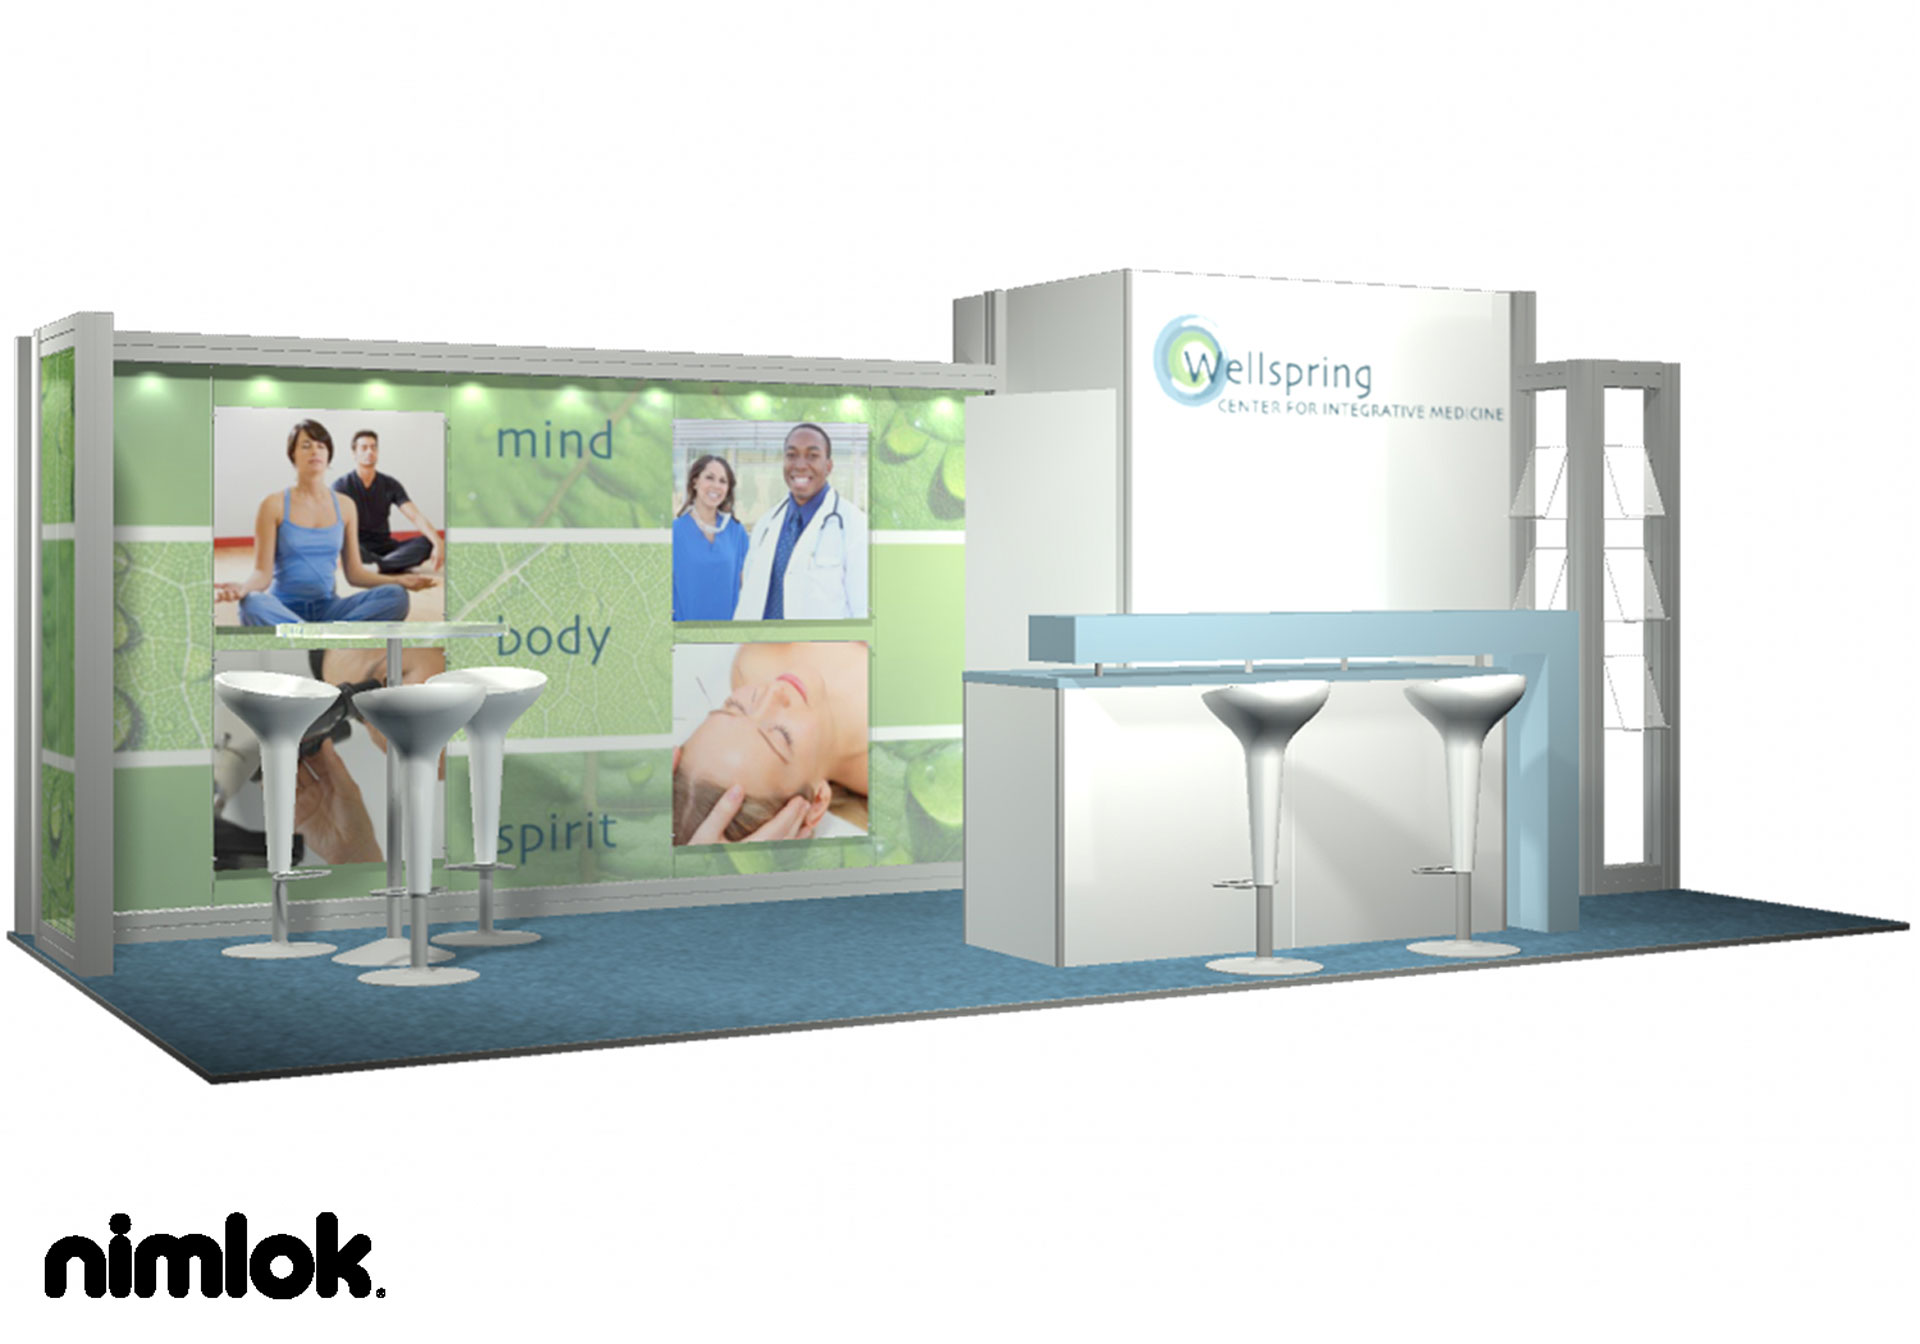 Wellspring - 10x20 - trade show exhibit